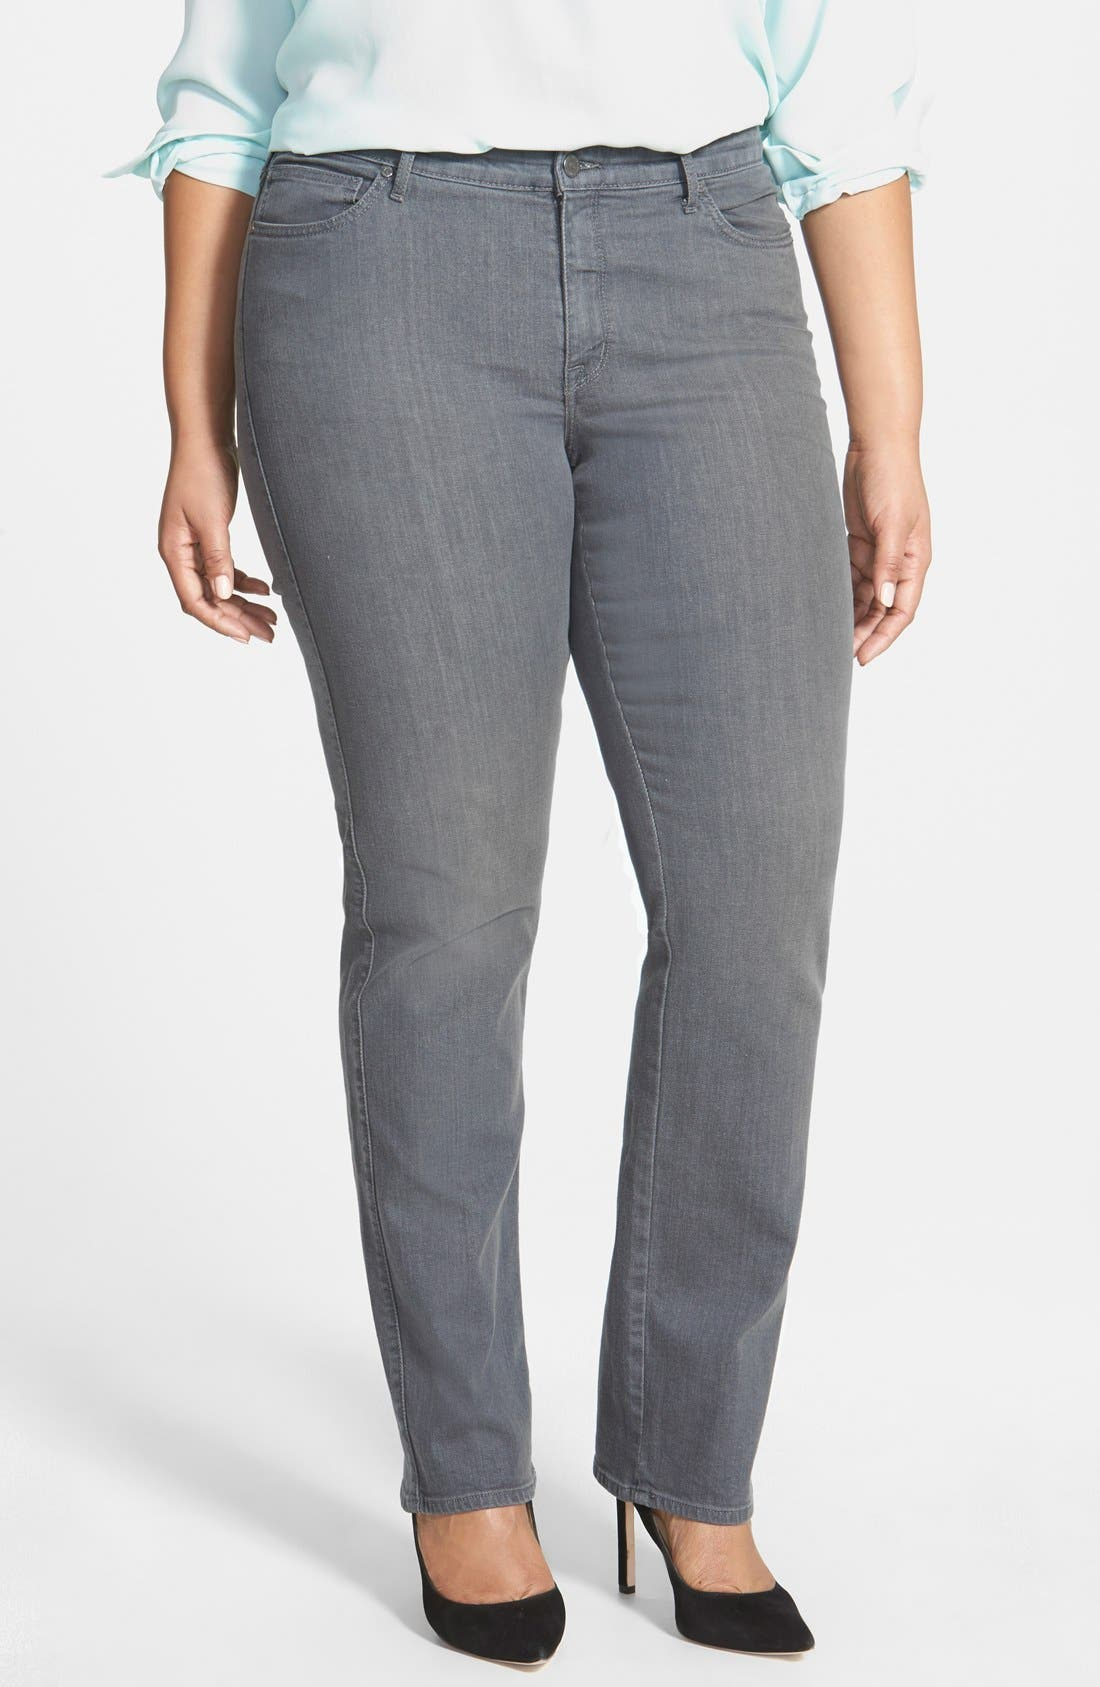 Alternate Image 1 Selected - CJ by Cookie Johnson 'Faith' Stretch Straight Leg Jeans (Plus Size)